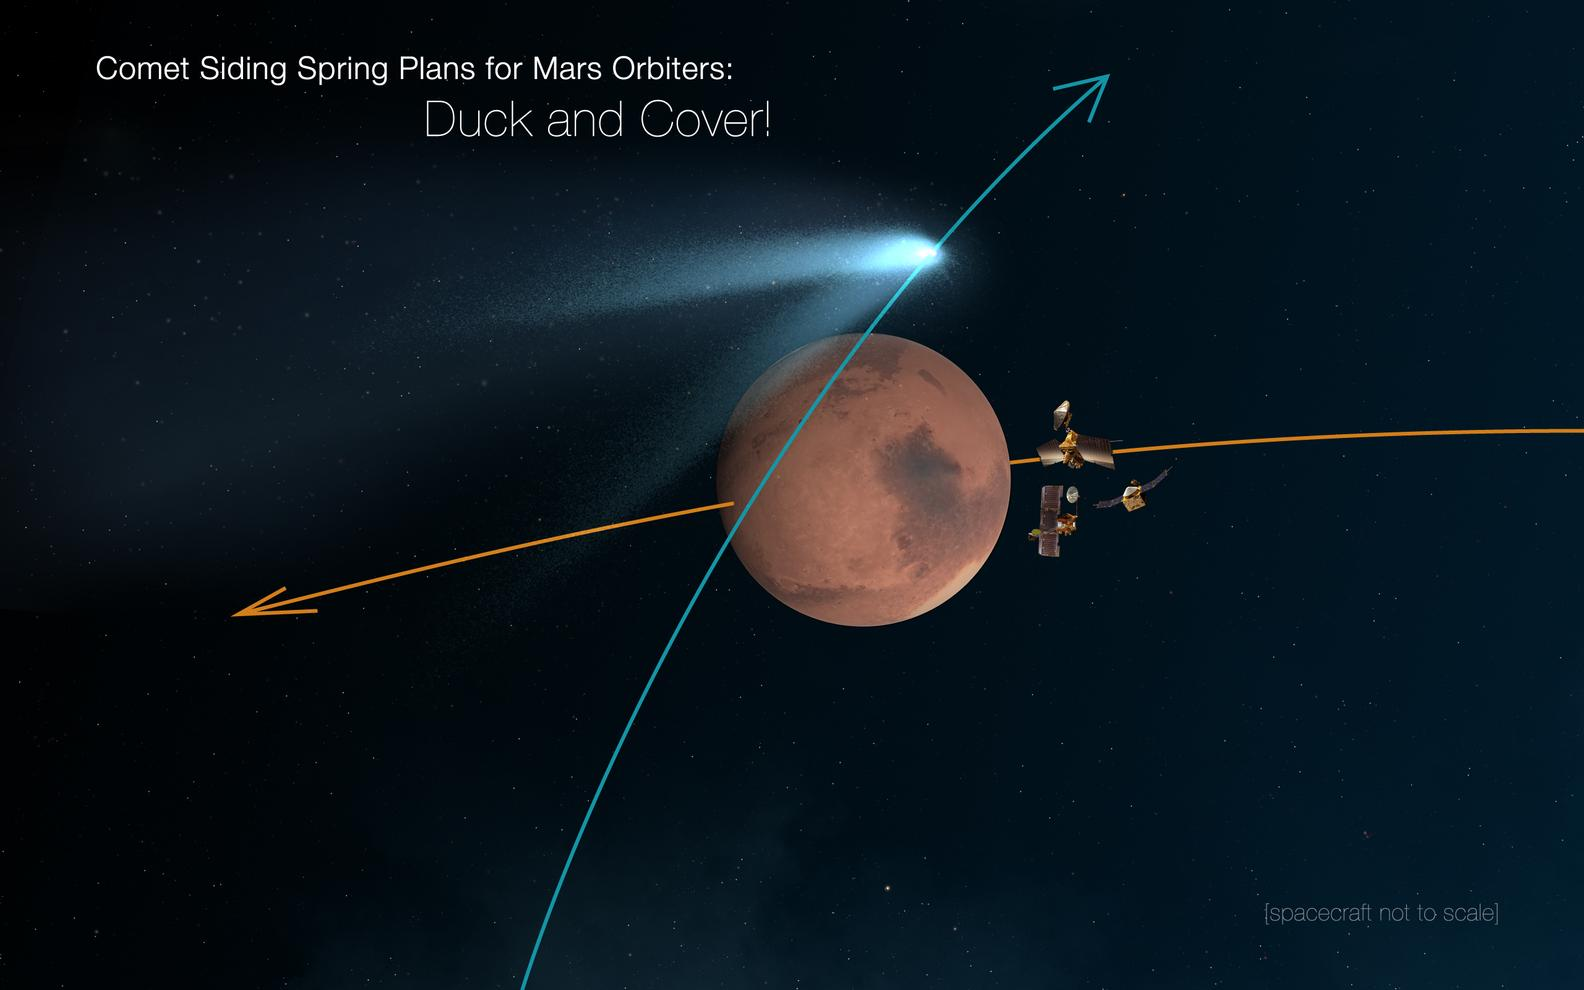 Mars Orbiters 'Duck and Cover' for Comet Siding Spring Encounter